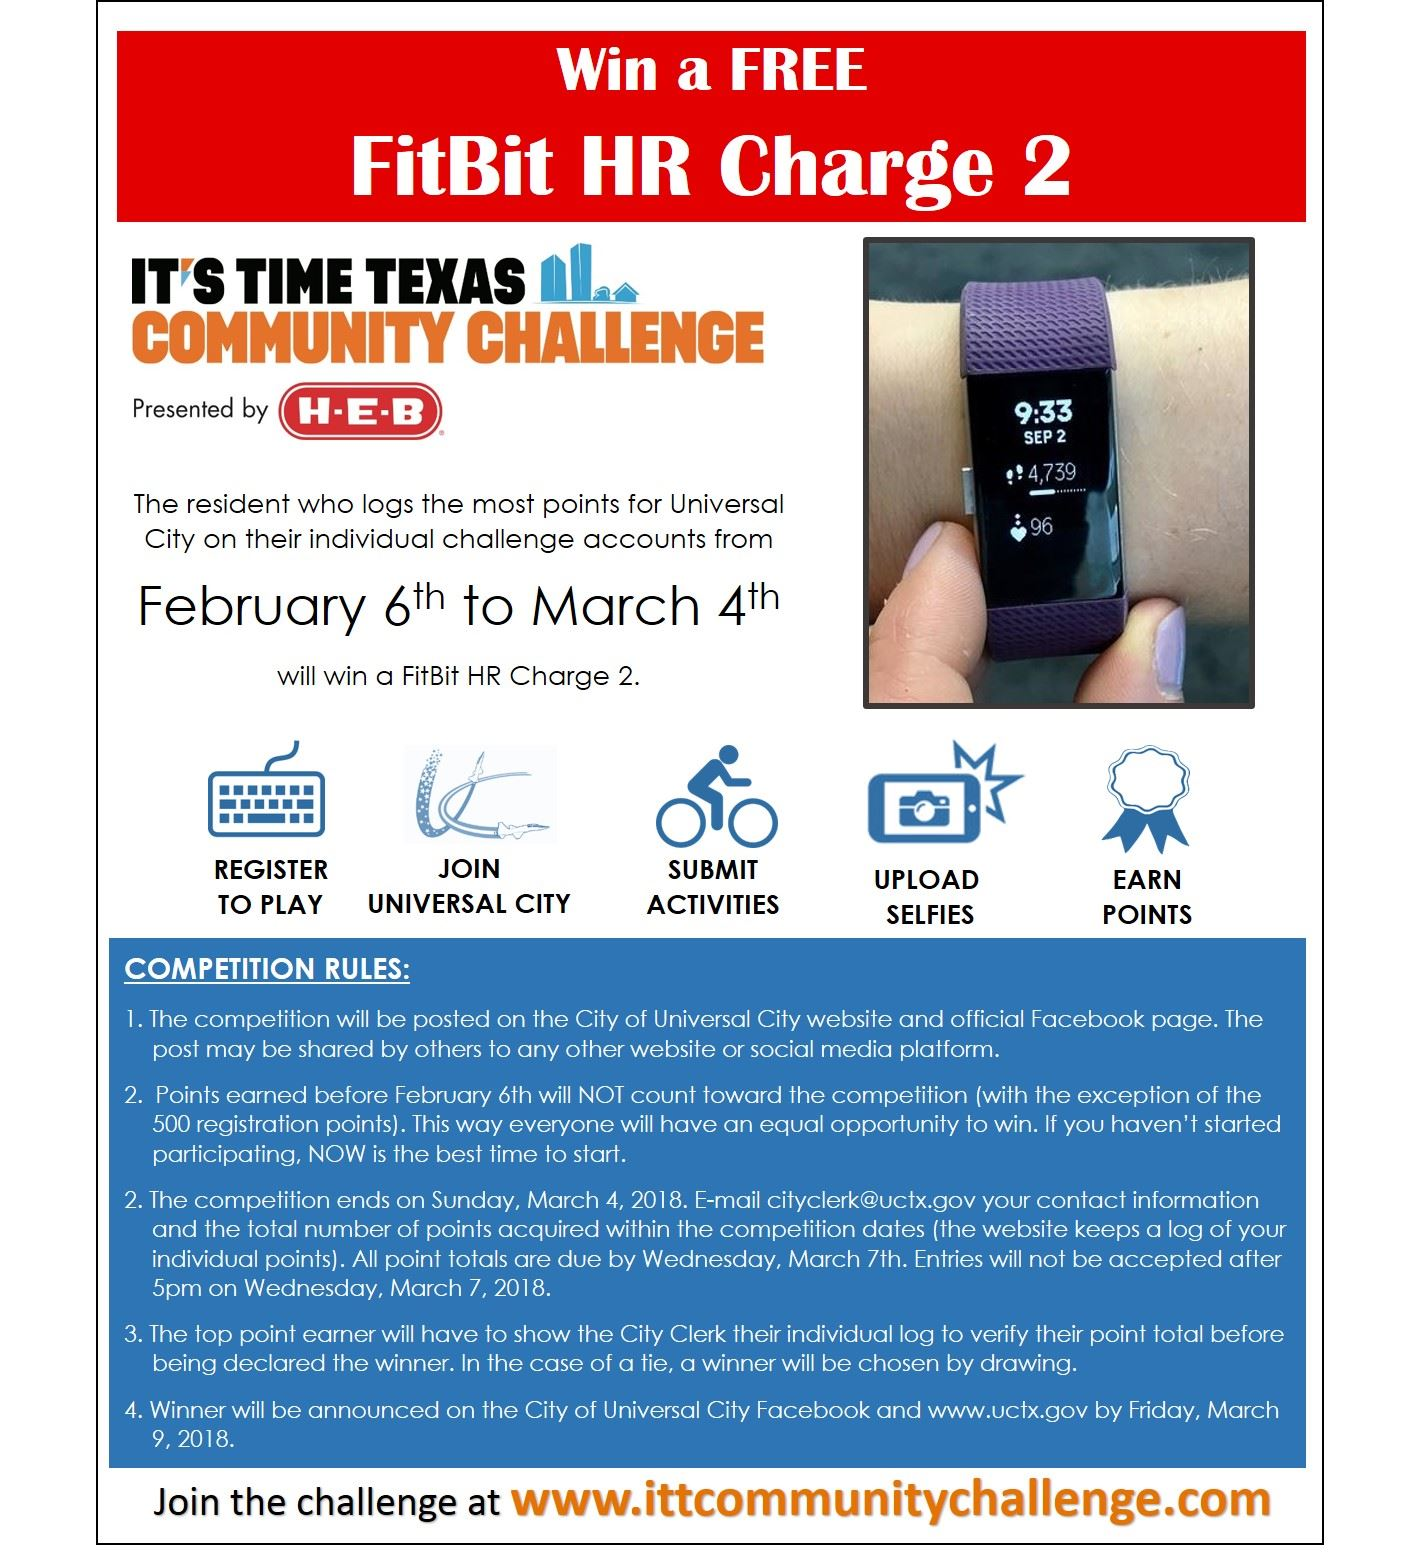 It's Time Texas Community Challenge - Local FitBit Challenge Flyer